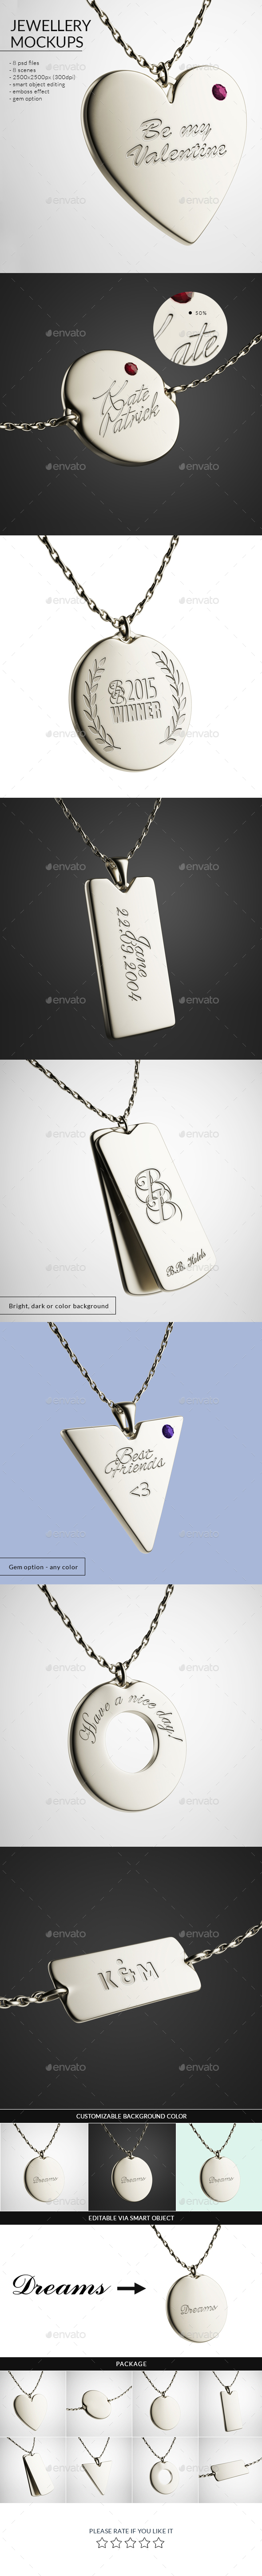 GraphicRiver Jewellery Mockups 10330308